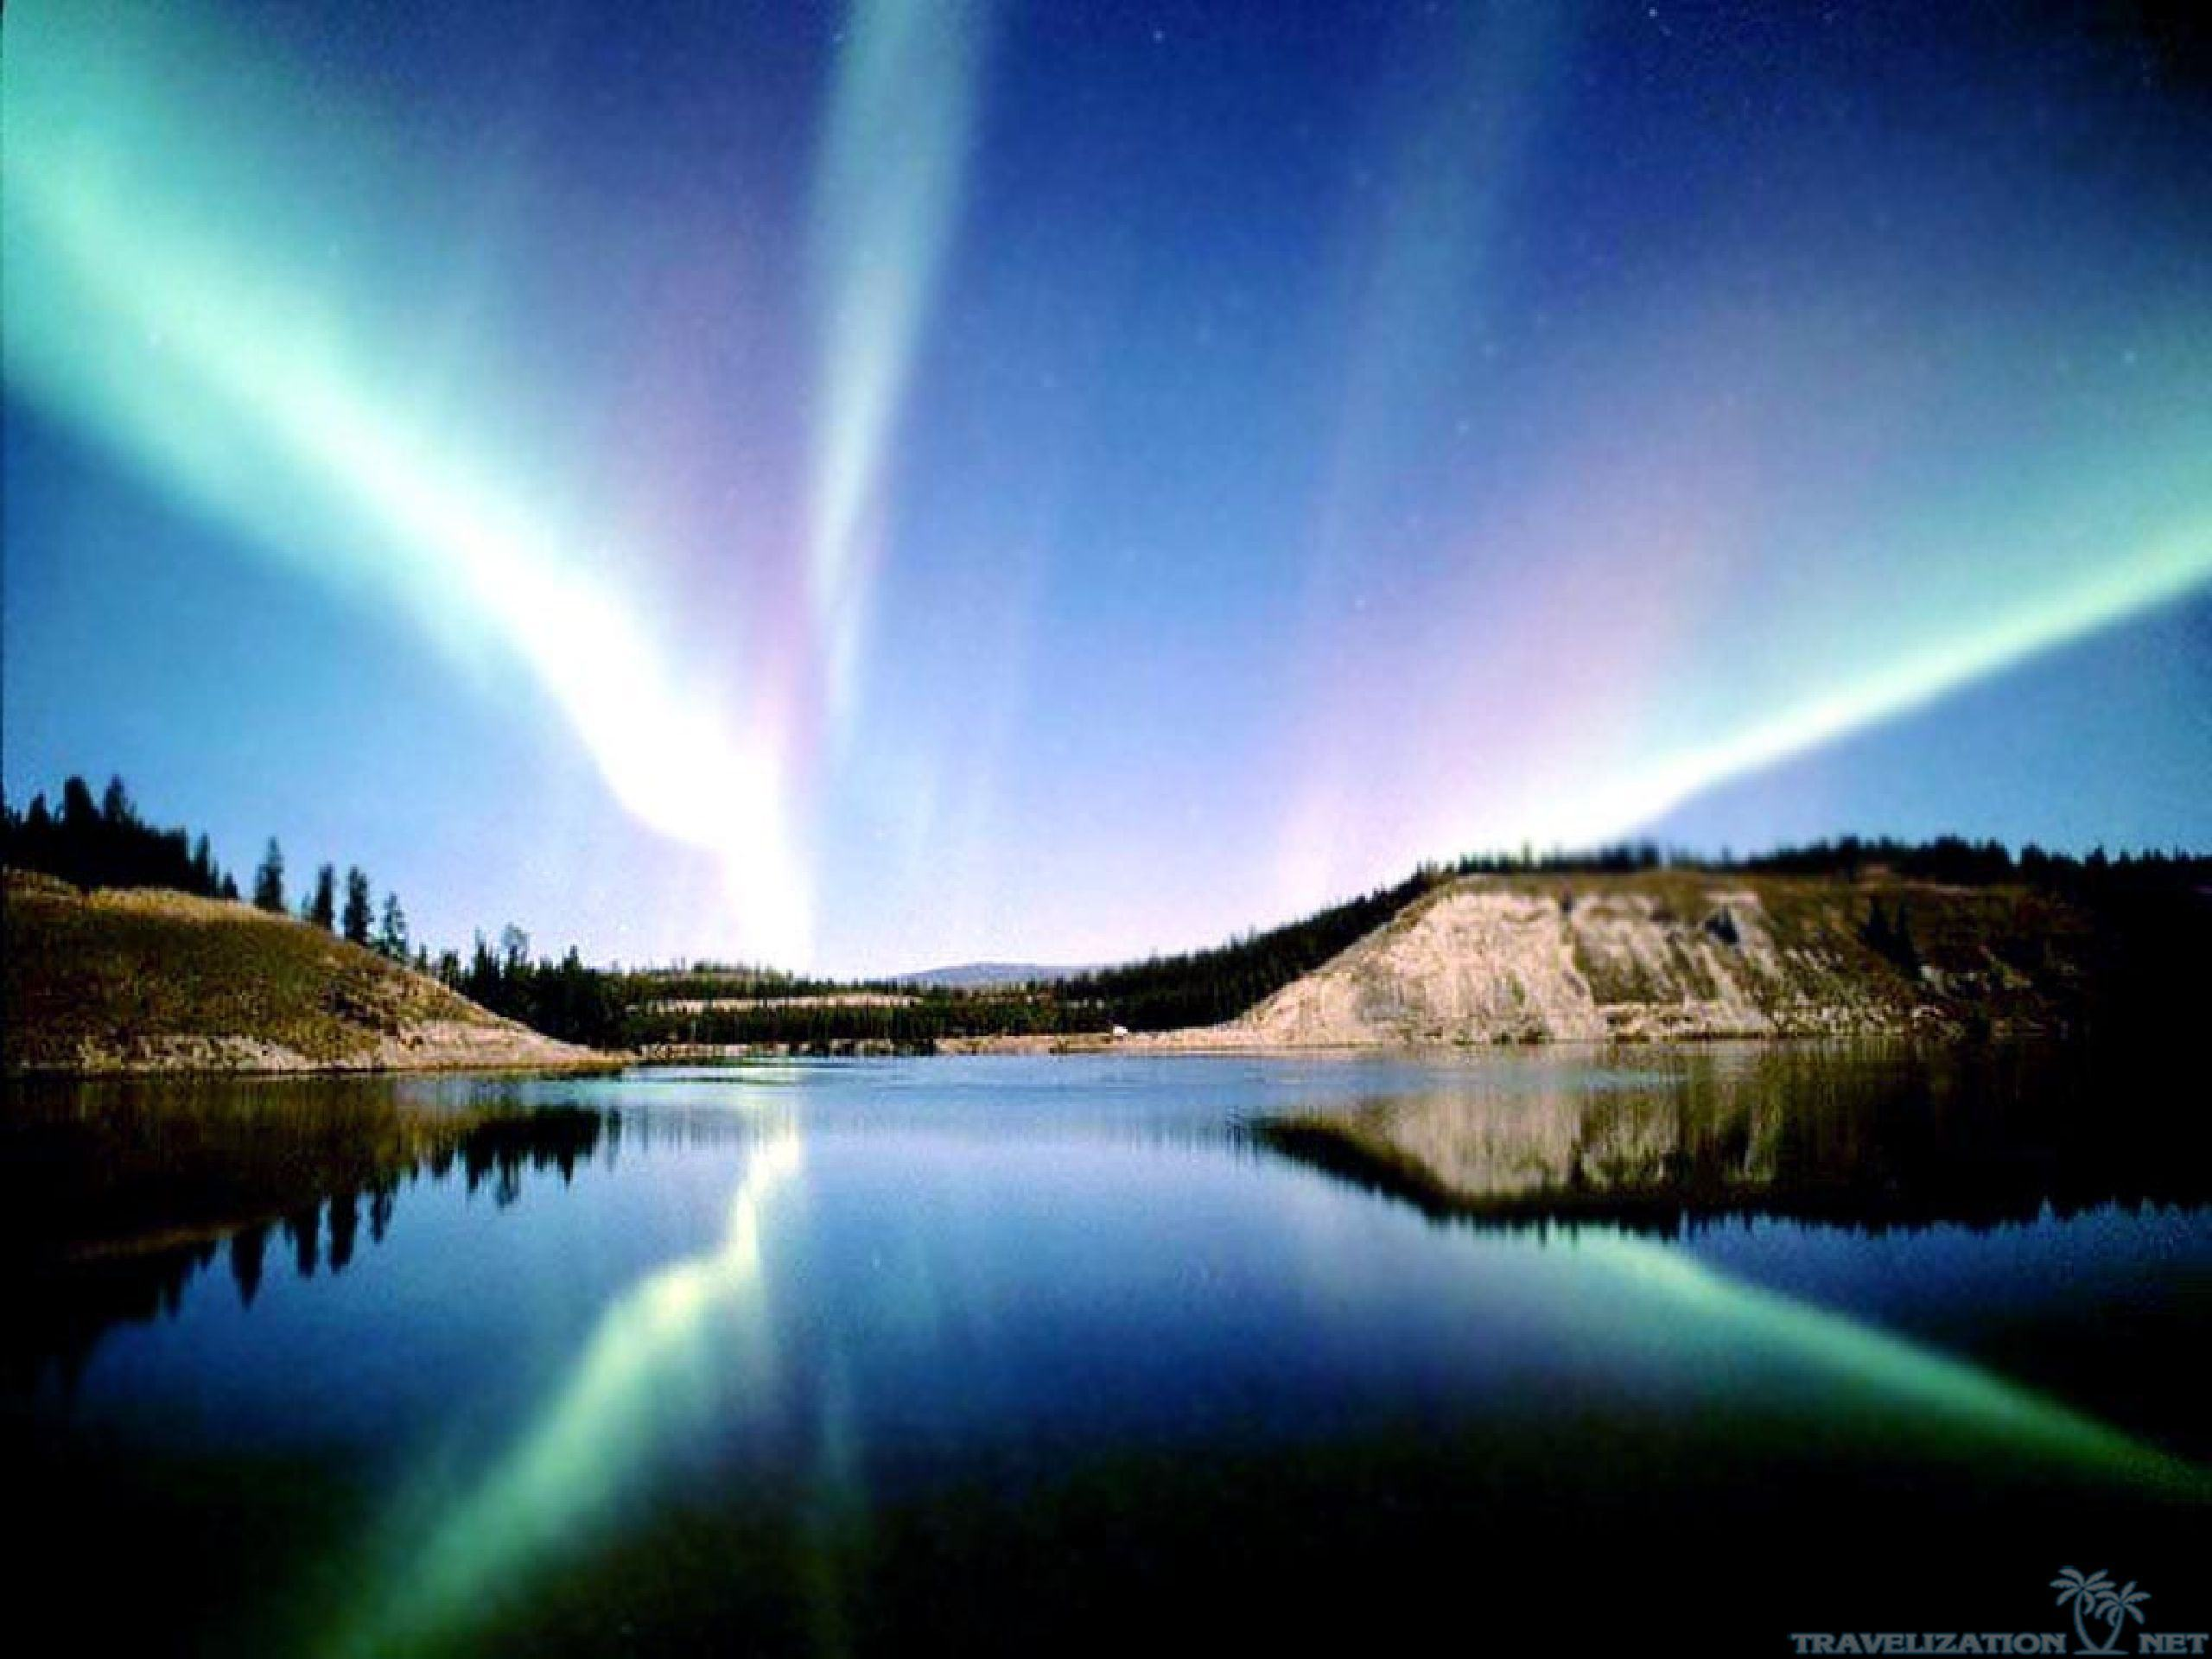 Wallpapers Backgrounds   Magical Sights Aurora Borealis Wallpapers 2560x1920